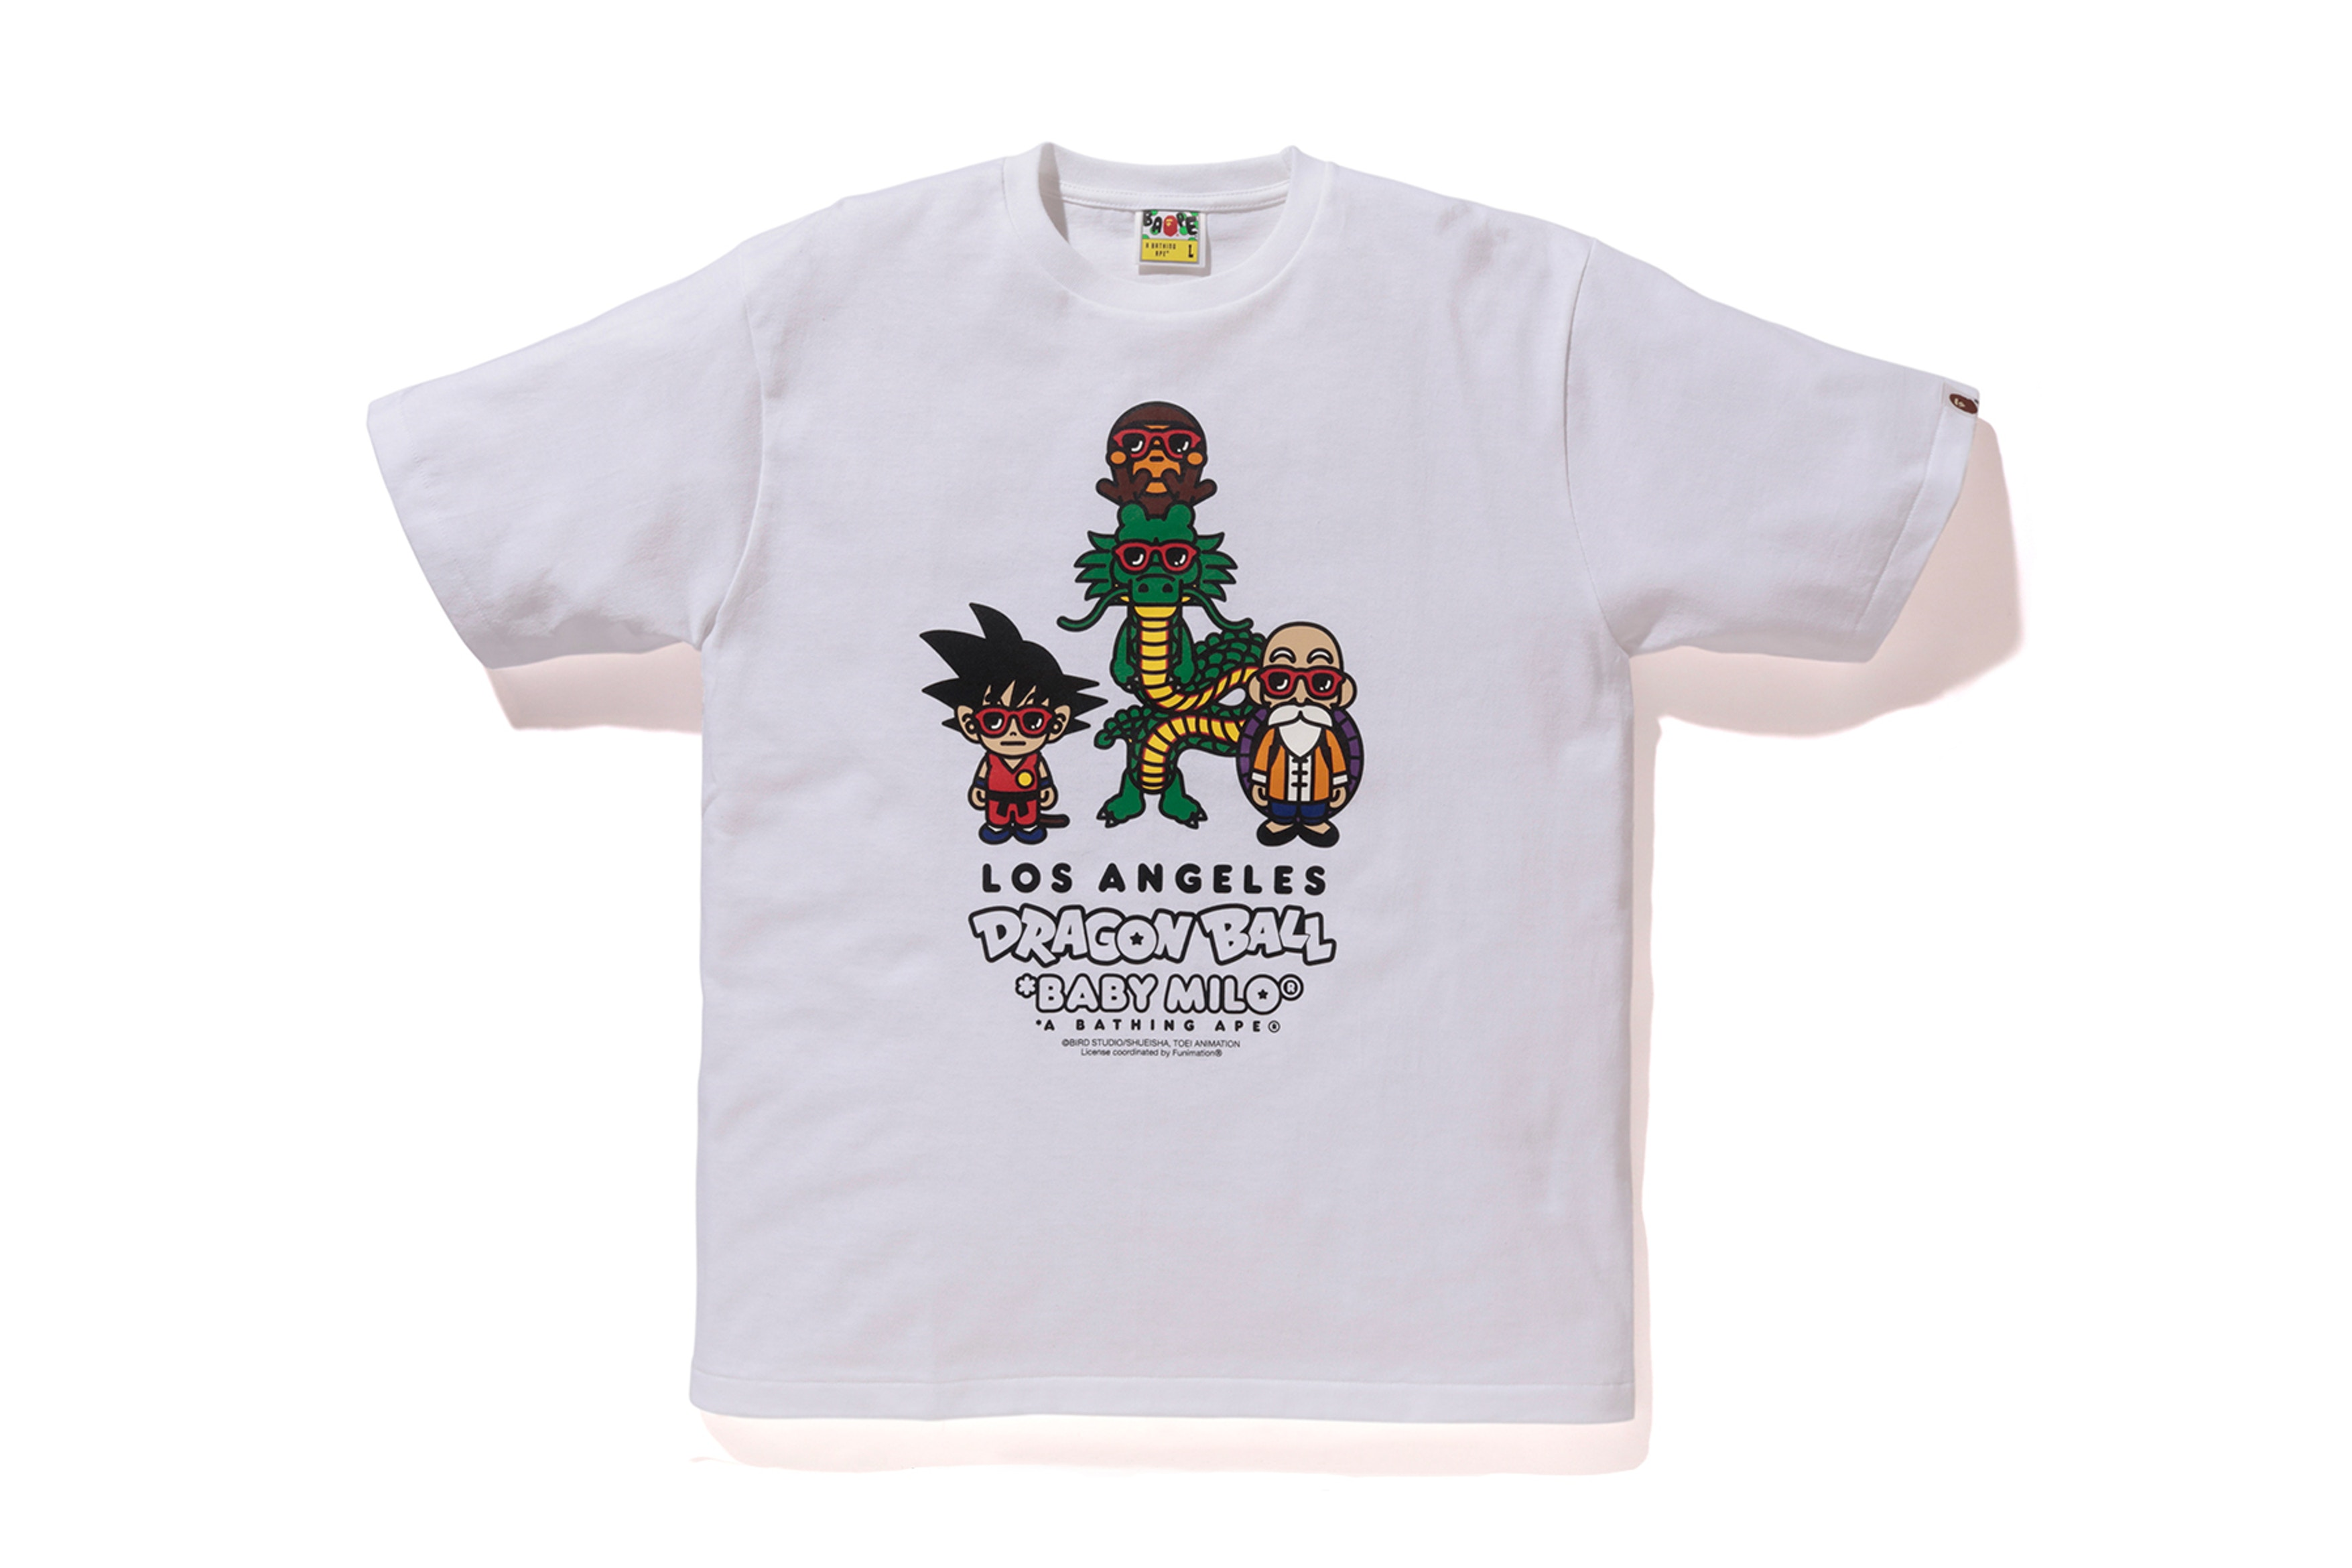 8458e25f Dragon Ball X BAPE Reveal Exclusive Collection Of T-Shirts For Los ...